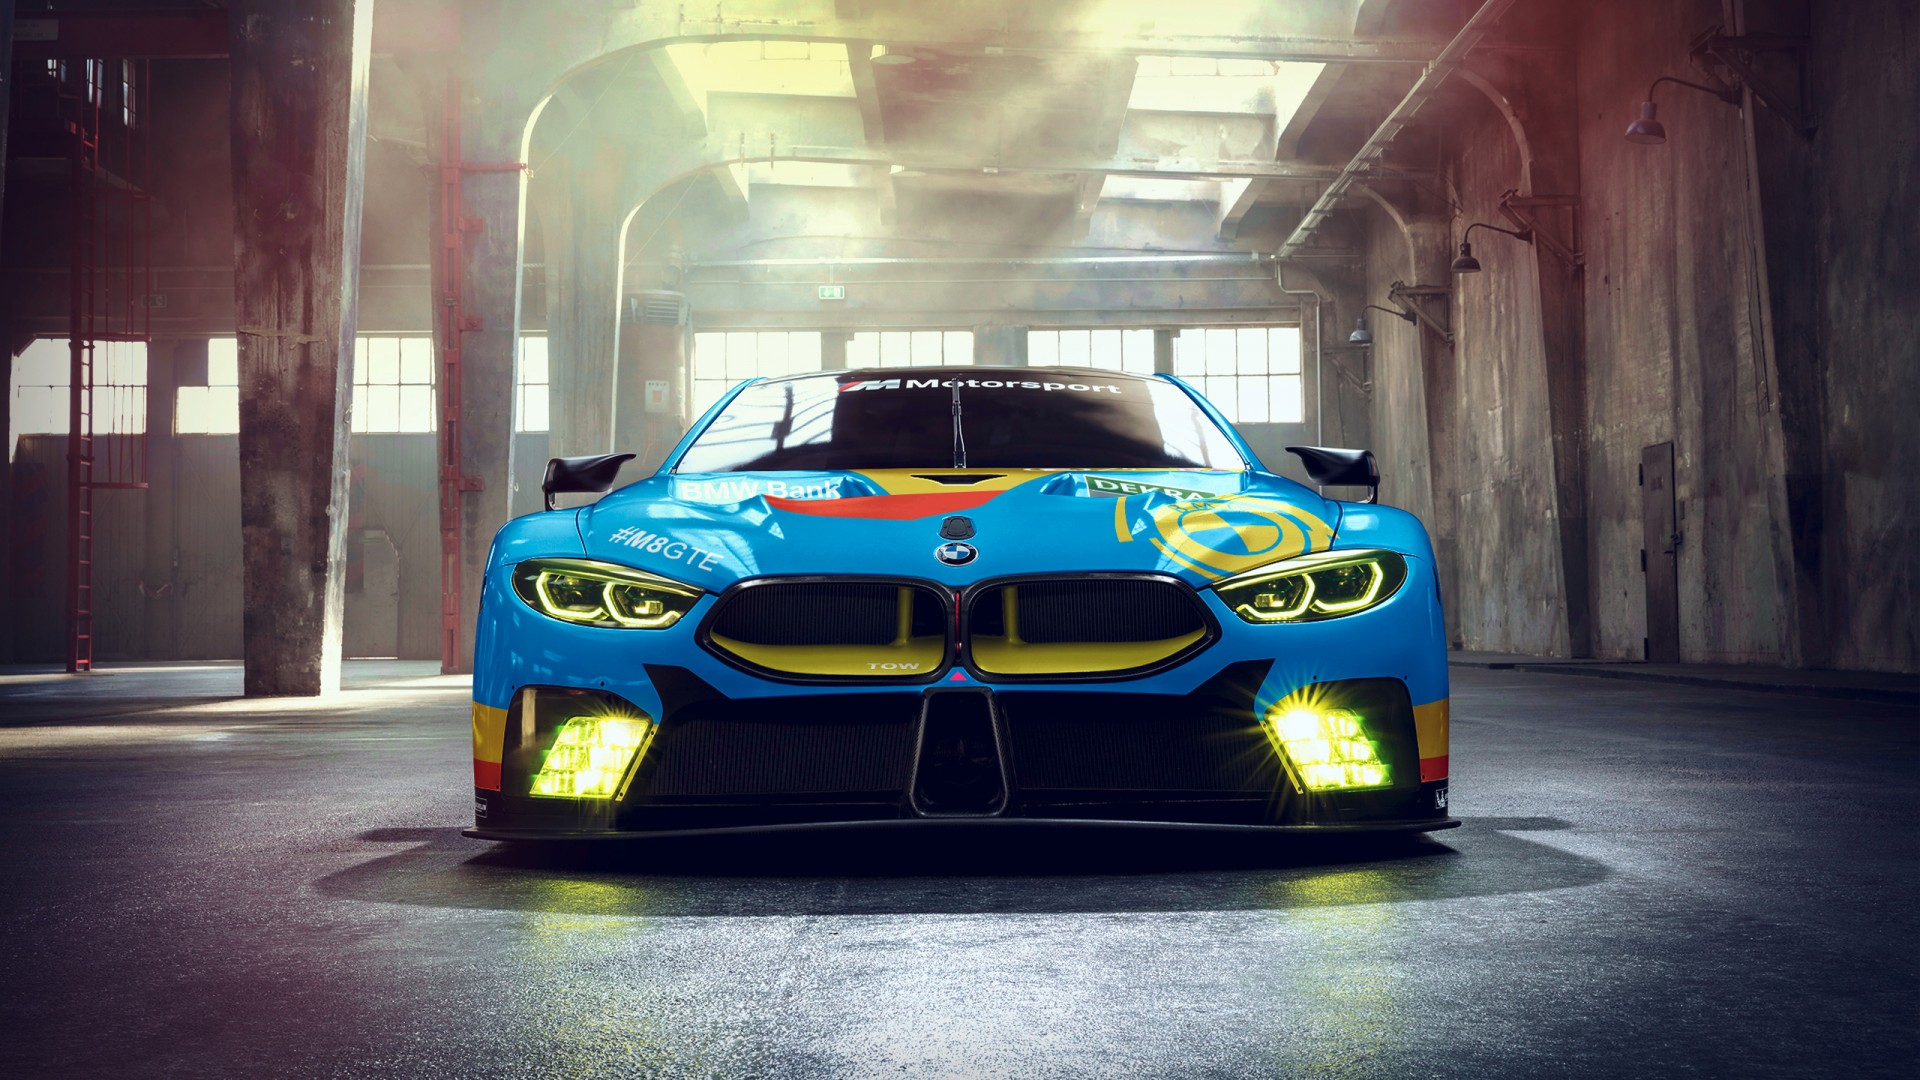 Honda Coupe 2017 >> BMW M8 GTE 2018 2 Wallpaper | HD Car Wallpapers | ID #9273